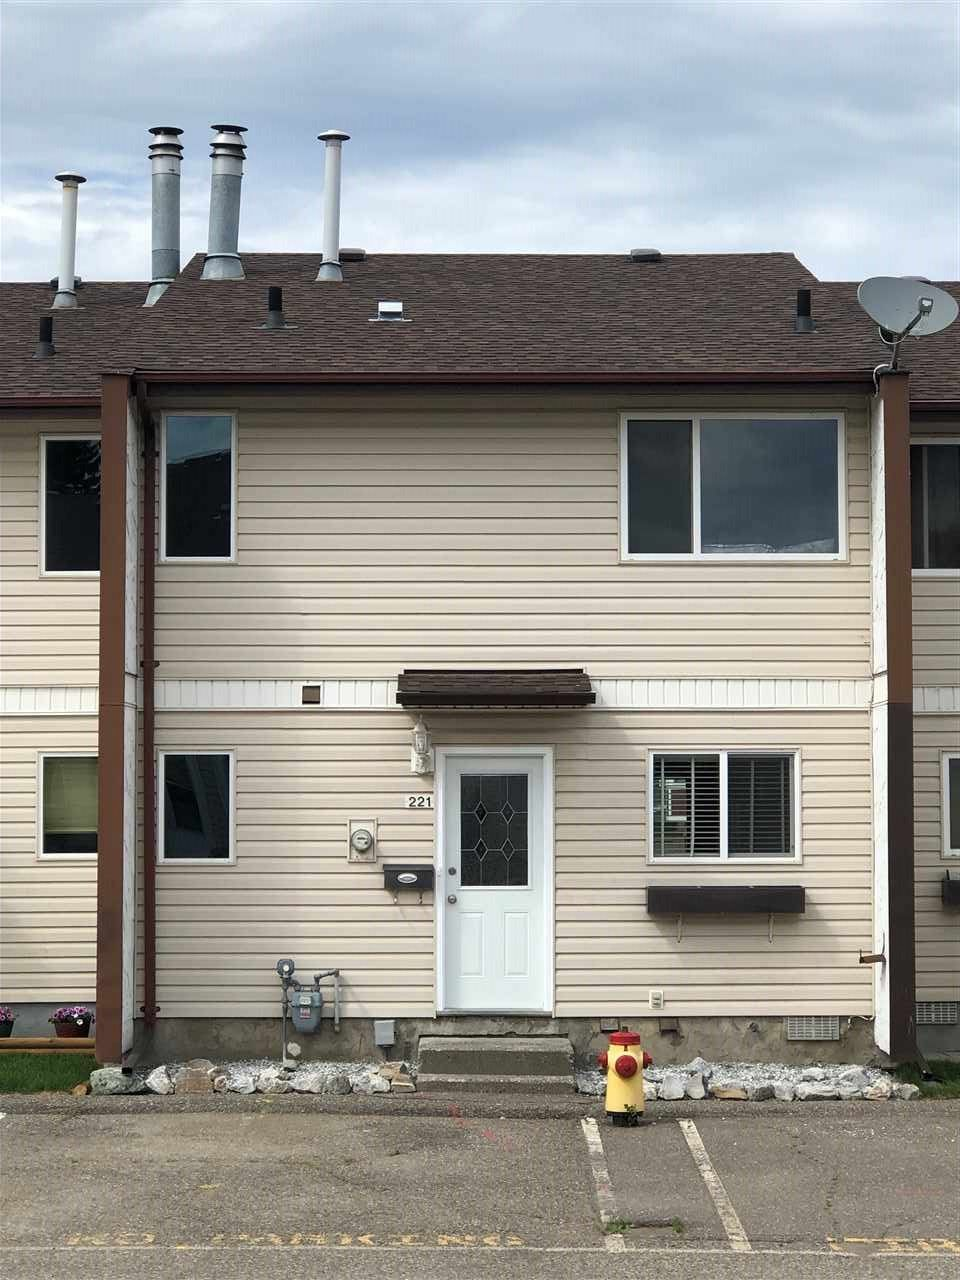 """Main Photo: 221 4344 JACKPINE Avenue in Prince George: Foothills Townhouse for sale in """"Foothills Estates"""" (PG City West (Zone 71))  : MLS®# R2380582"""